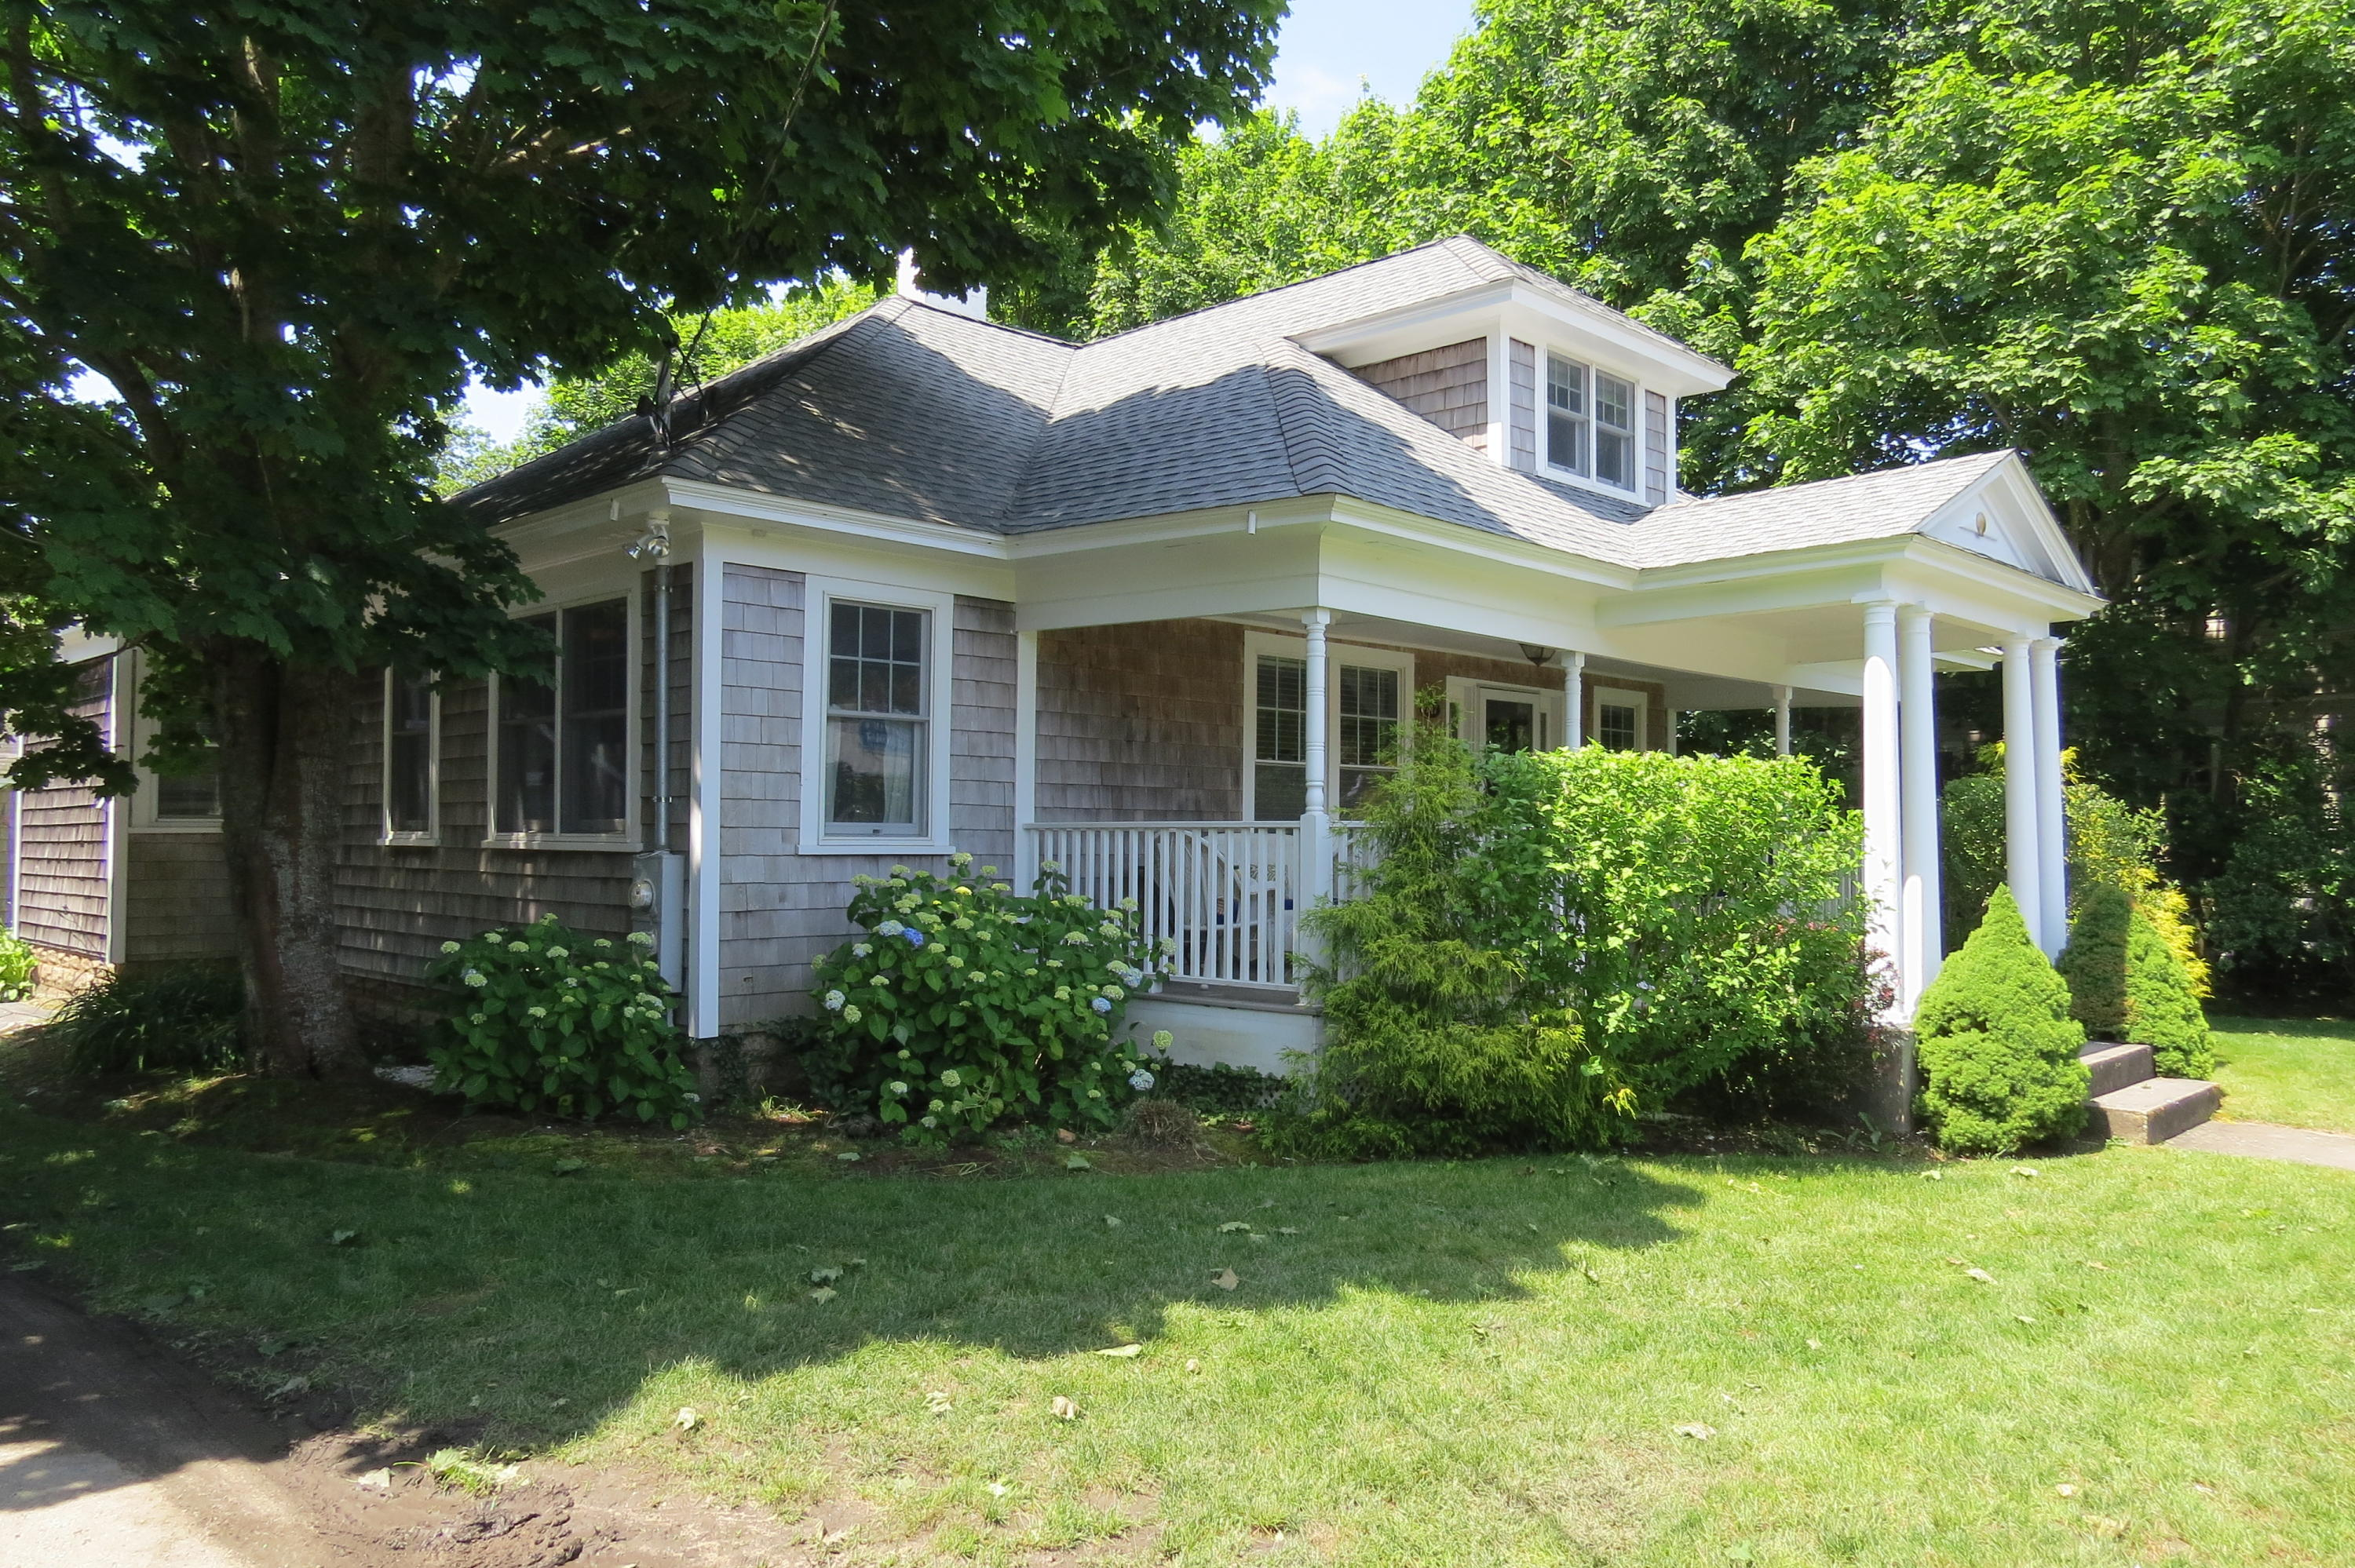 Chatham Real Estate - Cape Cod Antique , 745/747 Main Street, Chatham MA, 02633   Listed at $899,000